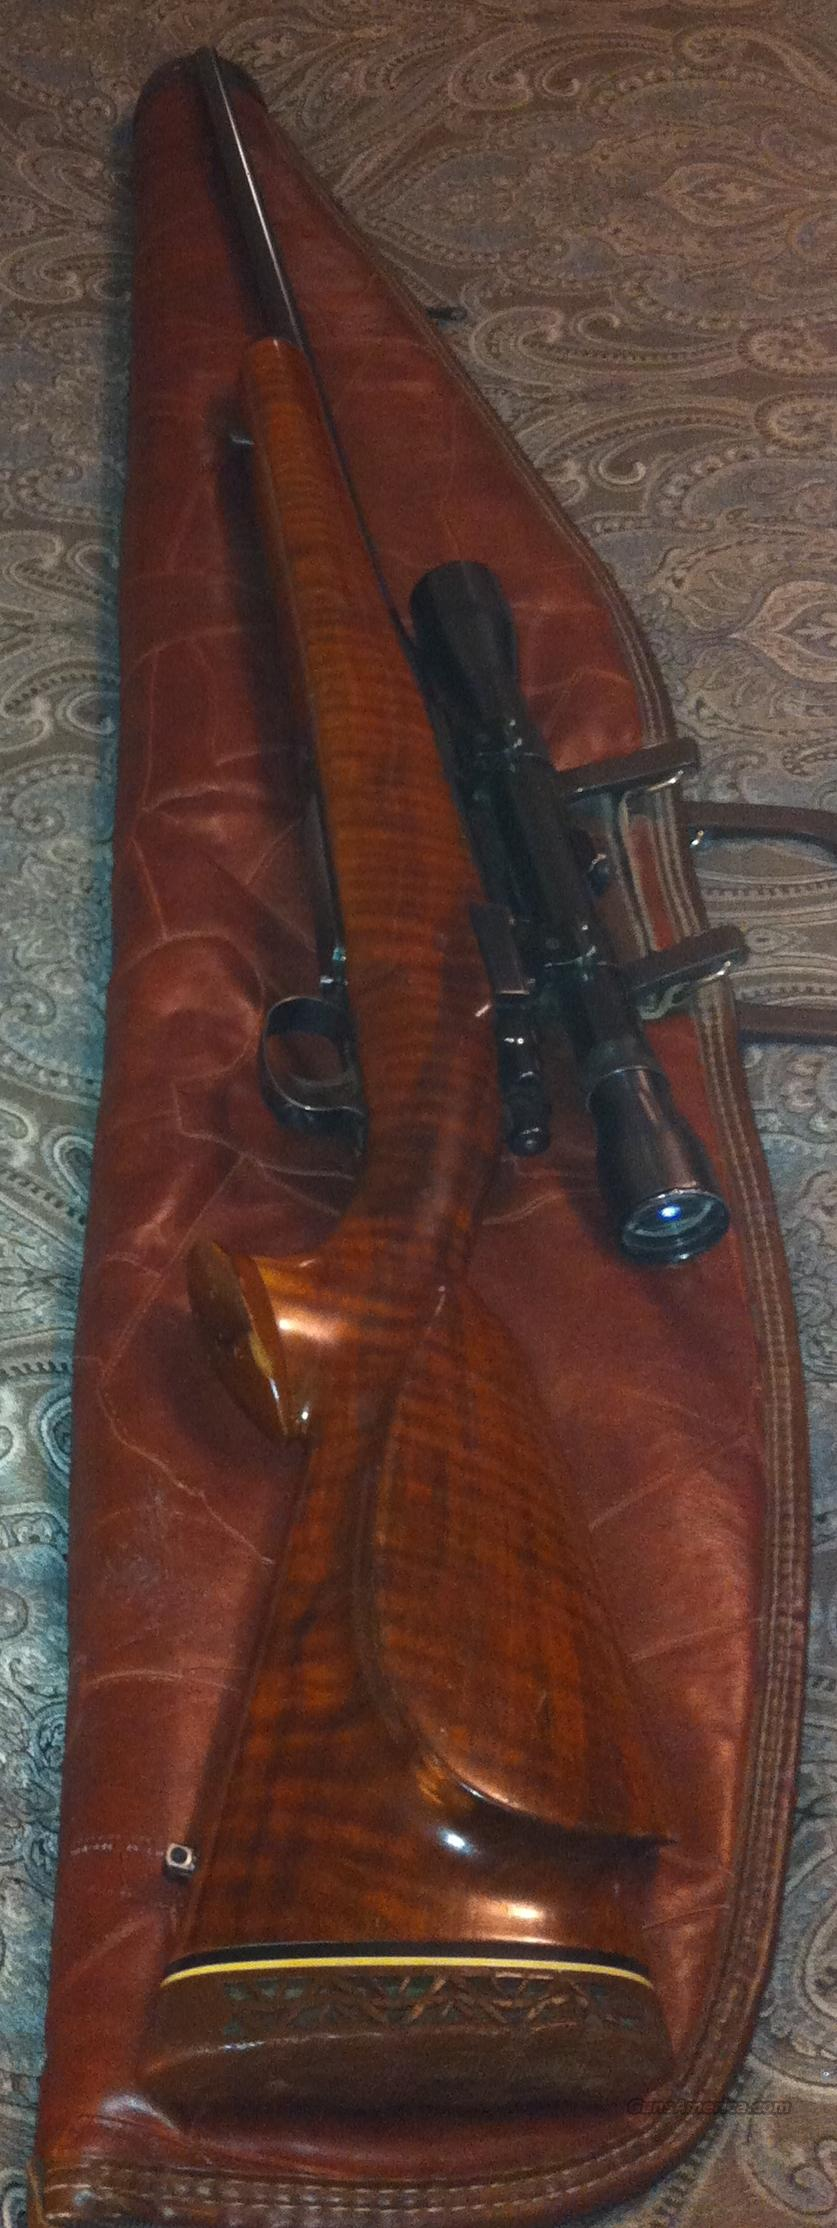 Custom 25 '06 with Bliss-Titus barrel, mauser supreme action, custom stalk.  Guns > Rifles > A Misc Rifles